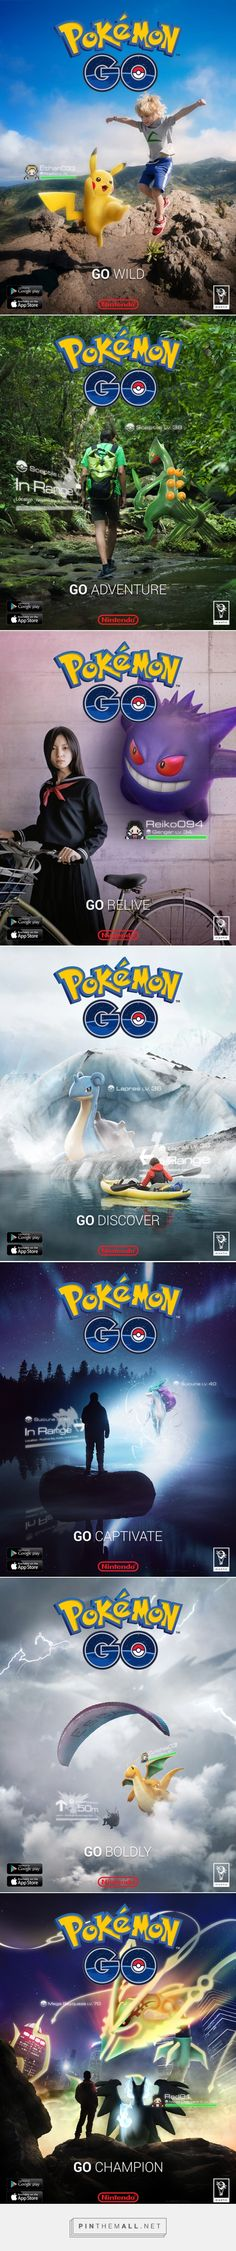 7 Epic Pokèmon GO Ads. I CAN'T WAIT!